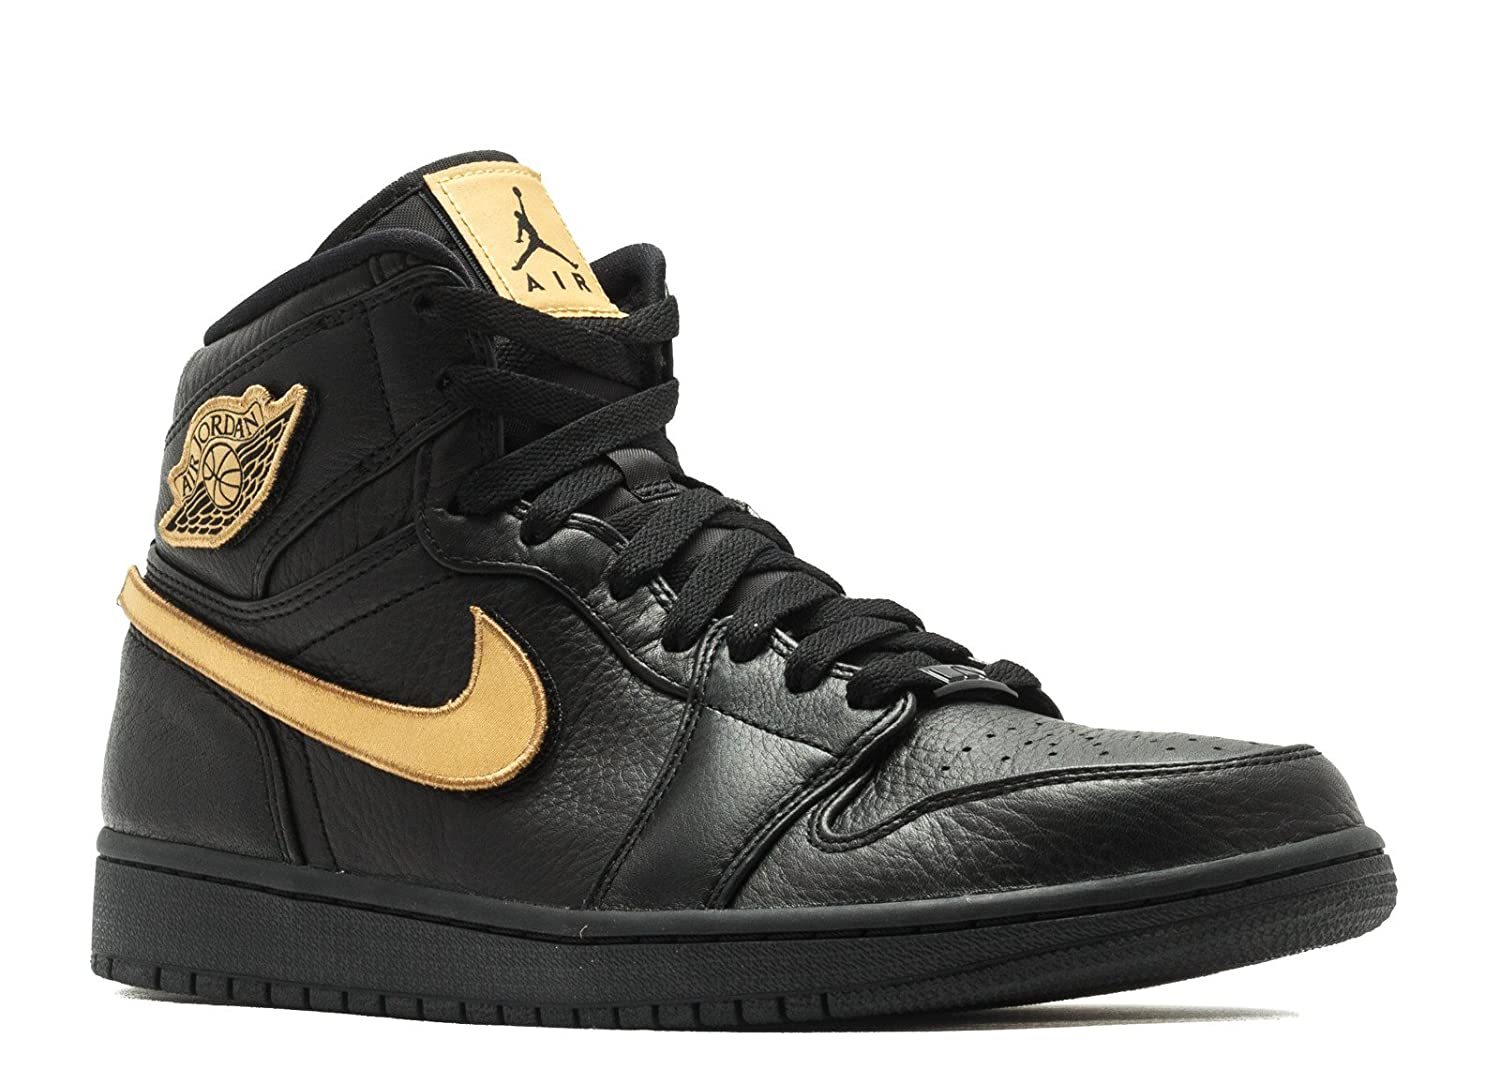 AIR JORDAN エアジョーダン AIR JORDAN 1 RETRO HIGH OG 'BHM' 908656-001 (メンズ) B01NB1GB75 13